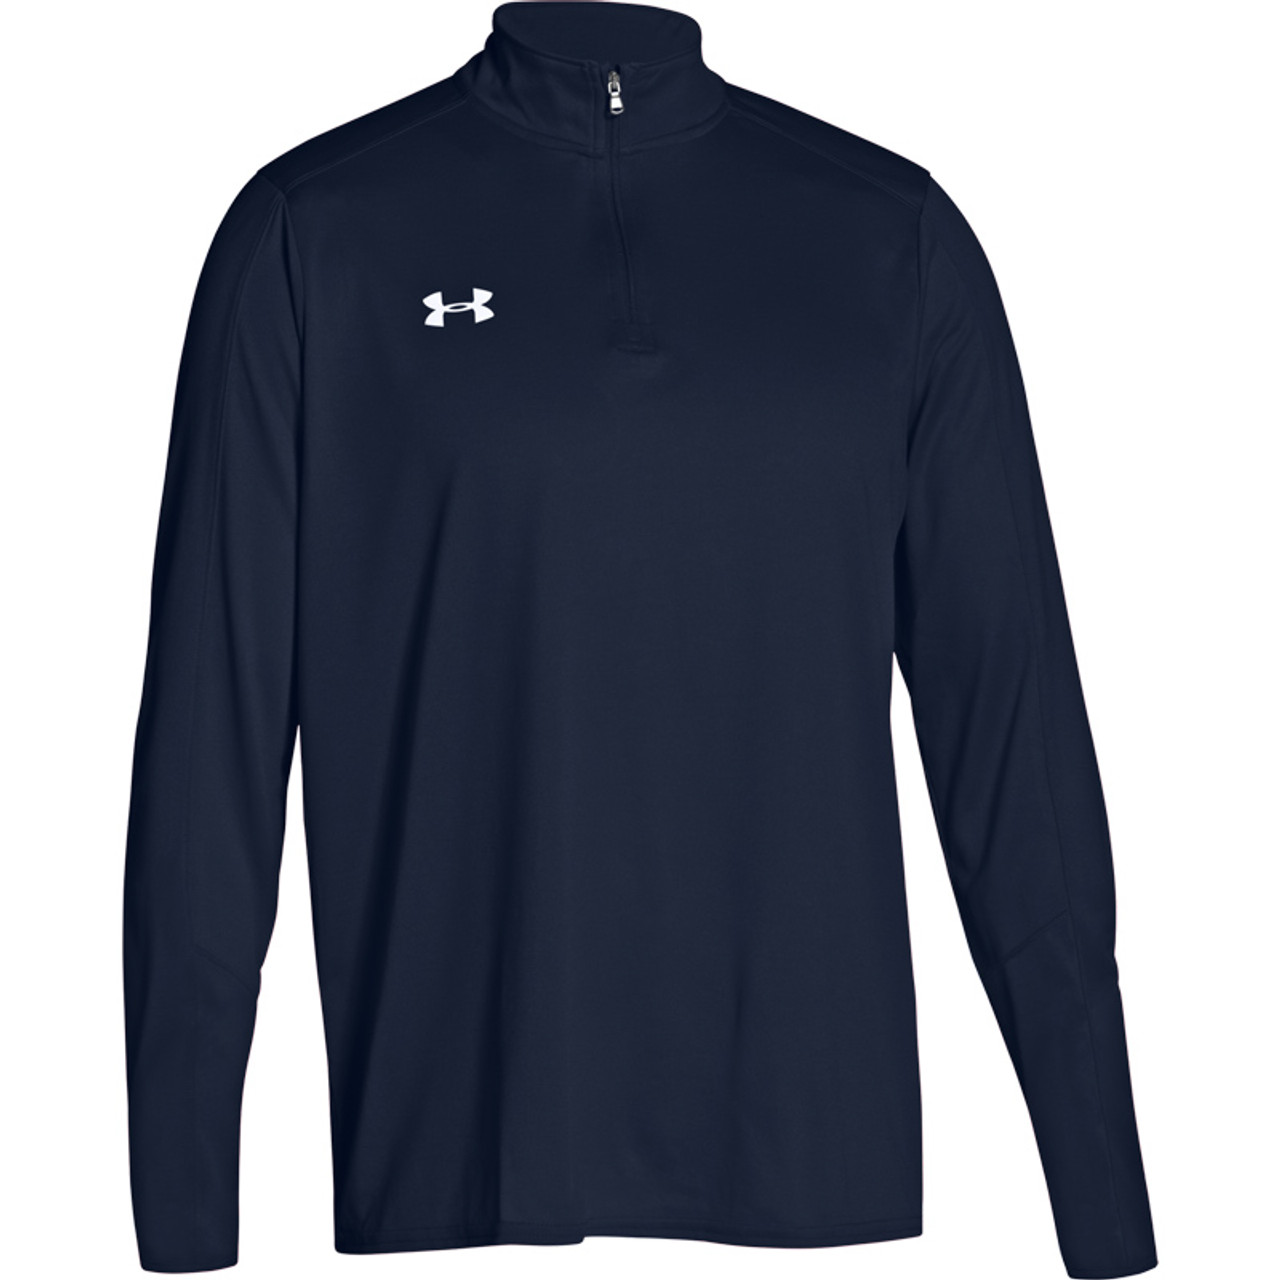 Under Armour Locker Long Sleeve T-Shirt Forest Green Size 3XL 1268475 301